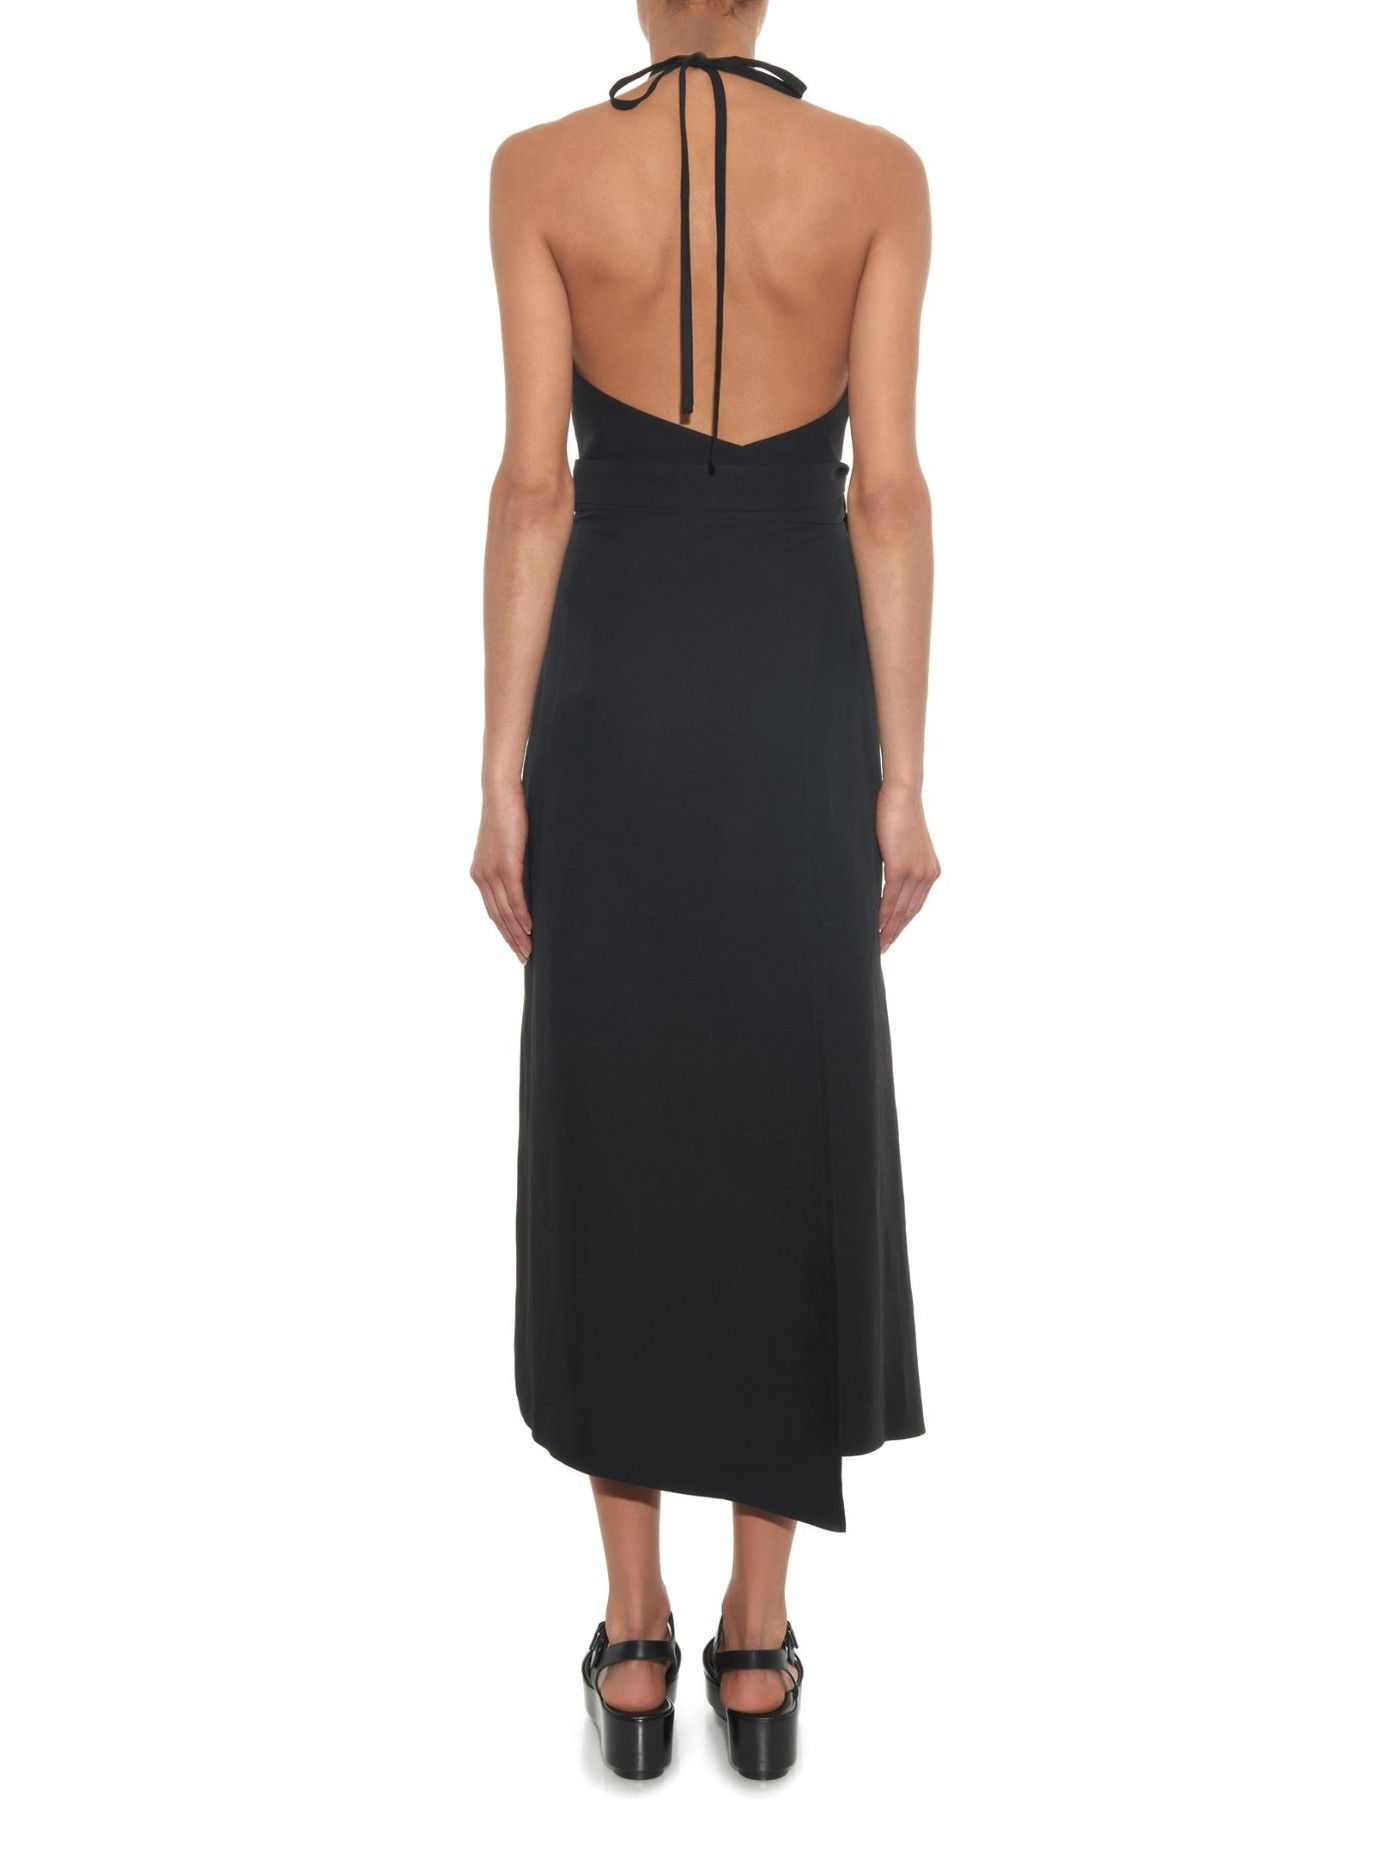 RAEY - £295. Textured backless wrap dress | This streamlined halterneck dress is a summer-ready take on the classic LBD from Raey. It's crafted from a textured fabric and boasts a self-fastening waist tie that chimes with this season's penchant for ladylike proportions. The midi length is best offset by a slight heel or wedge. Raey | MATCHESFASHION.COM UK